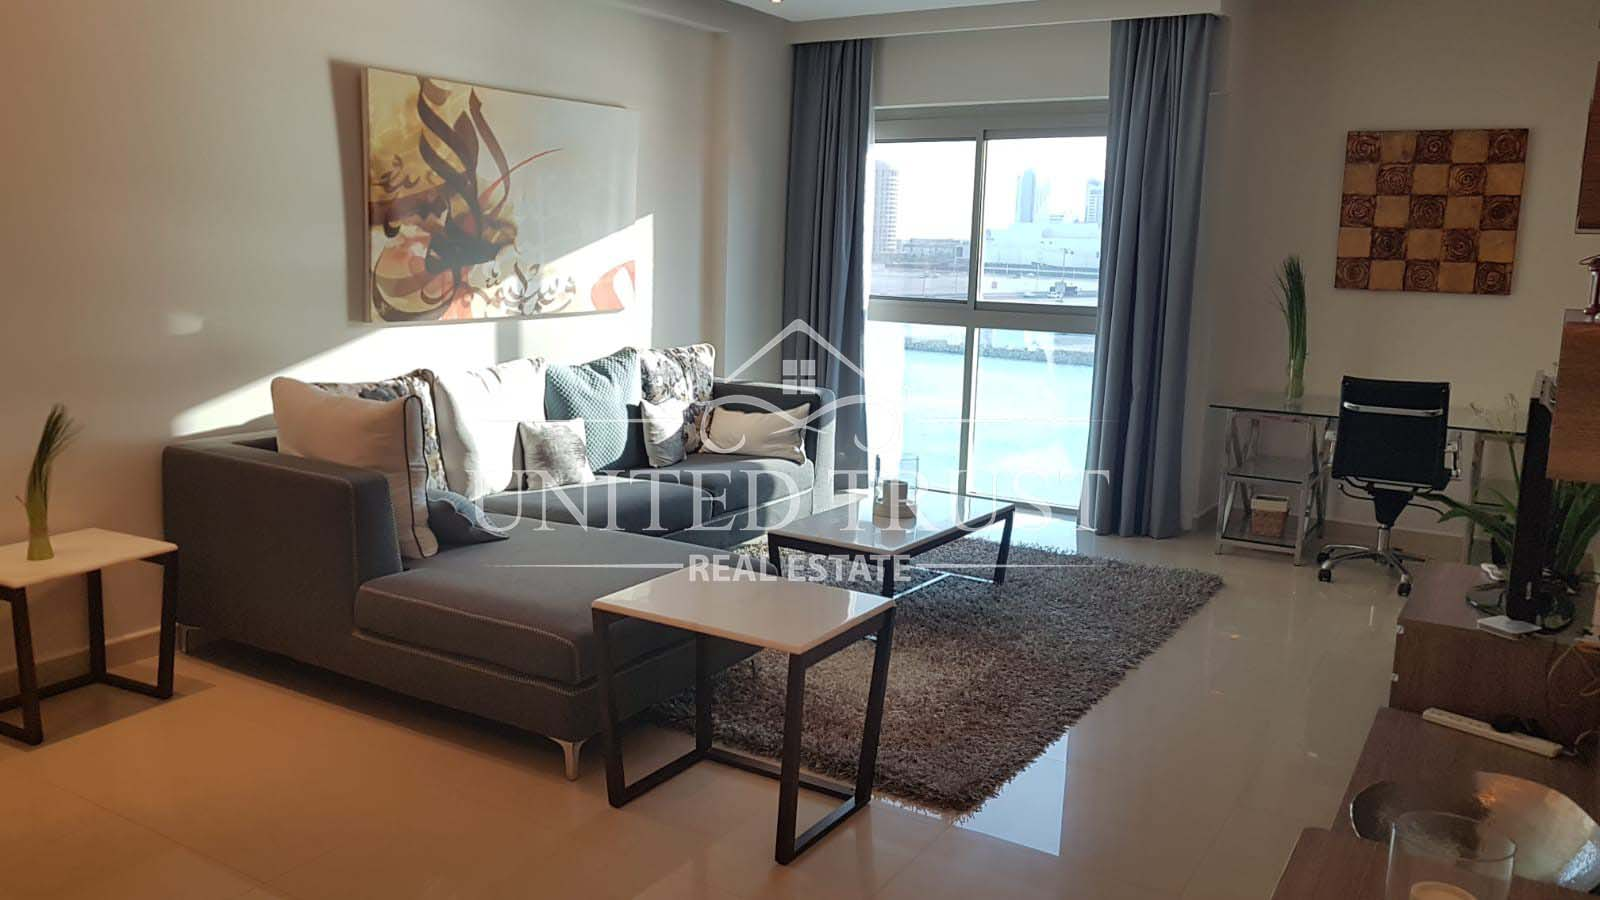 For rent a flat in porta reef seef.prime location modern.fully furnished sea view. Ref: SEE-AB-010